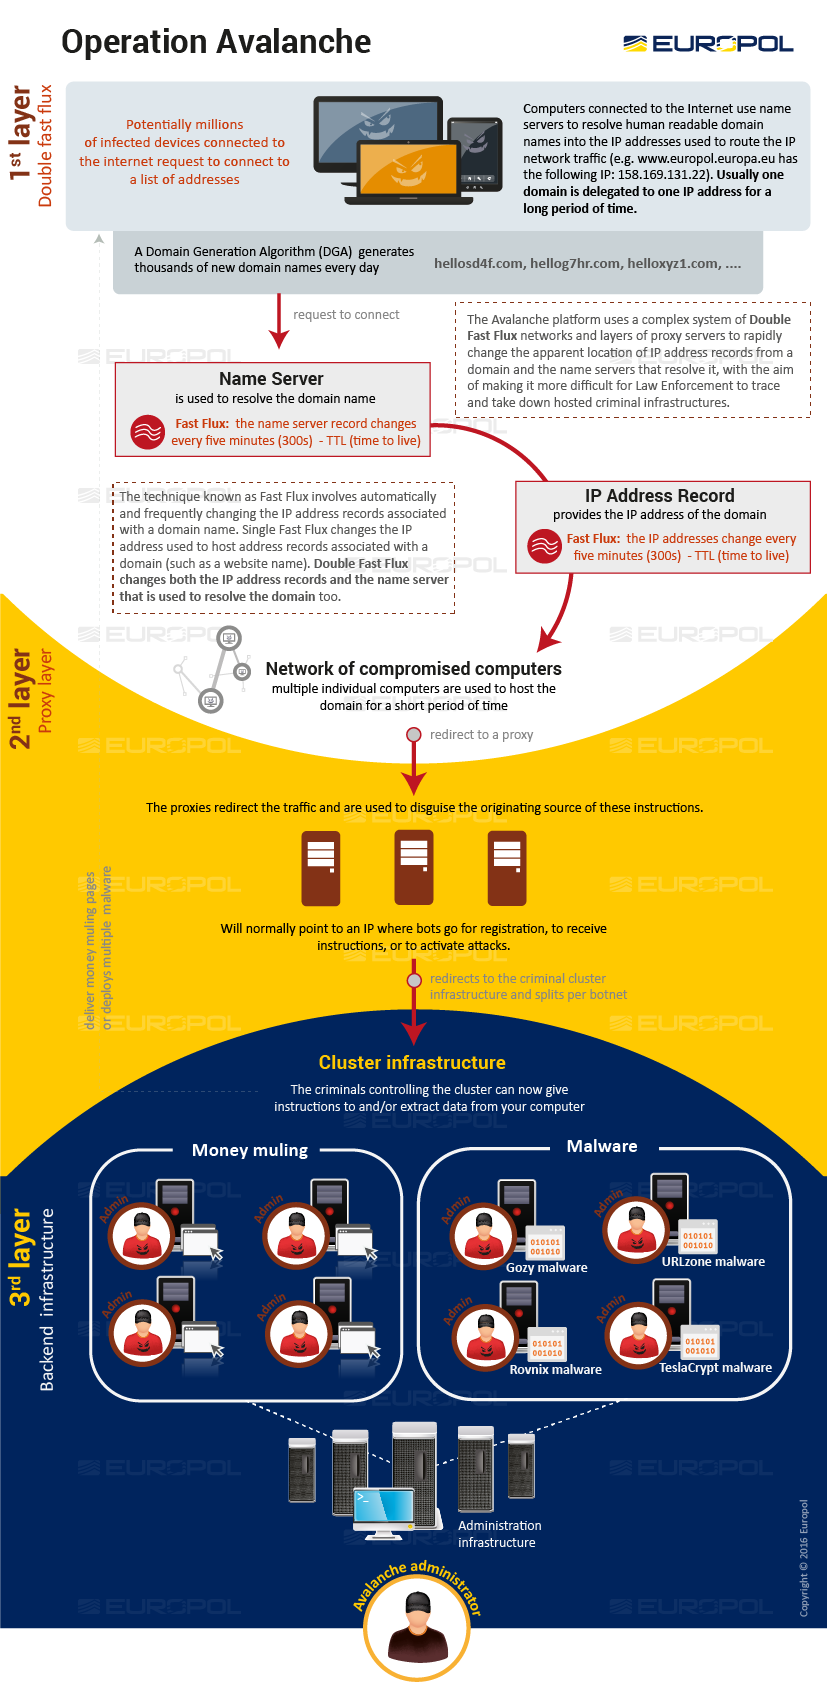 Europol/Shadowserver infographic showing the operation of the Avalanche cybercrime hosting system